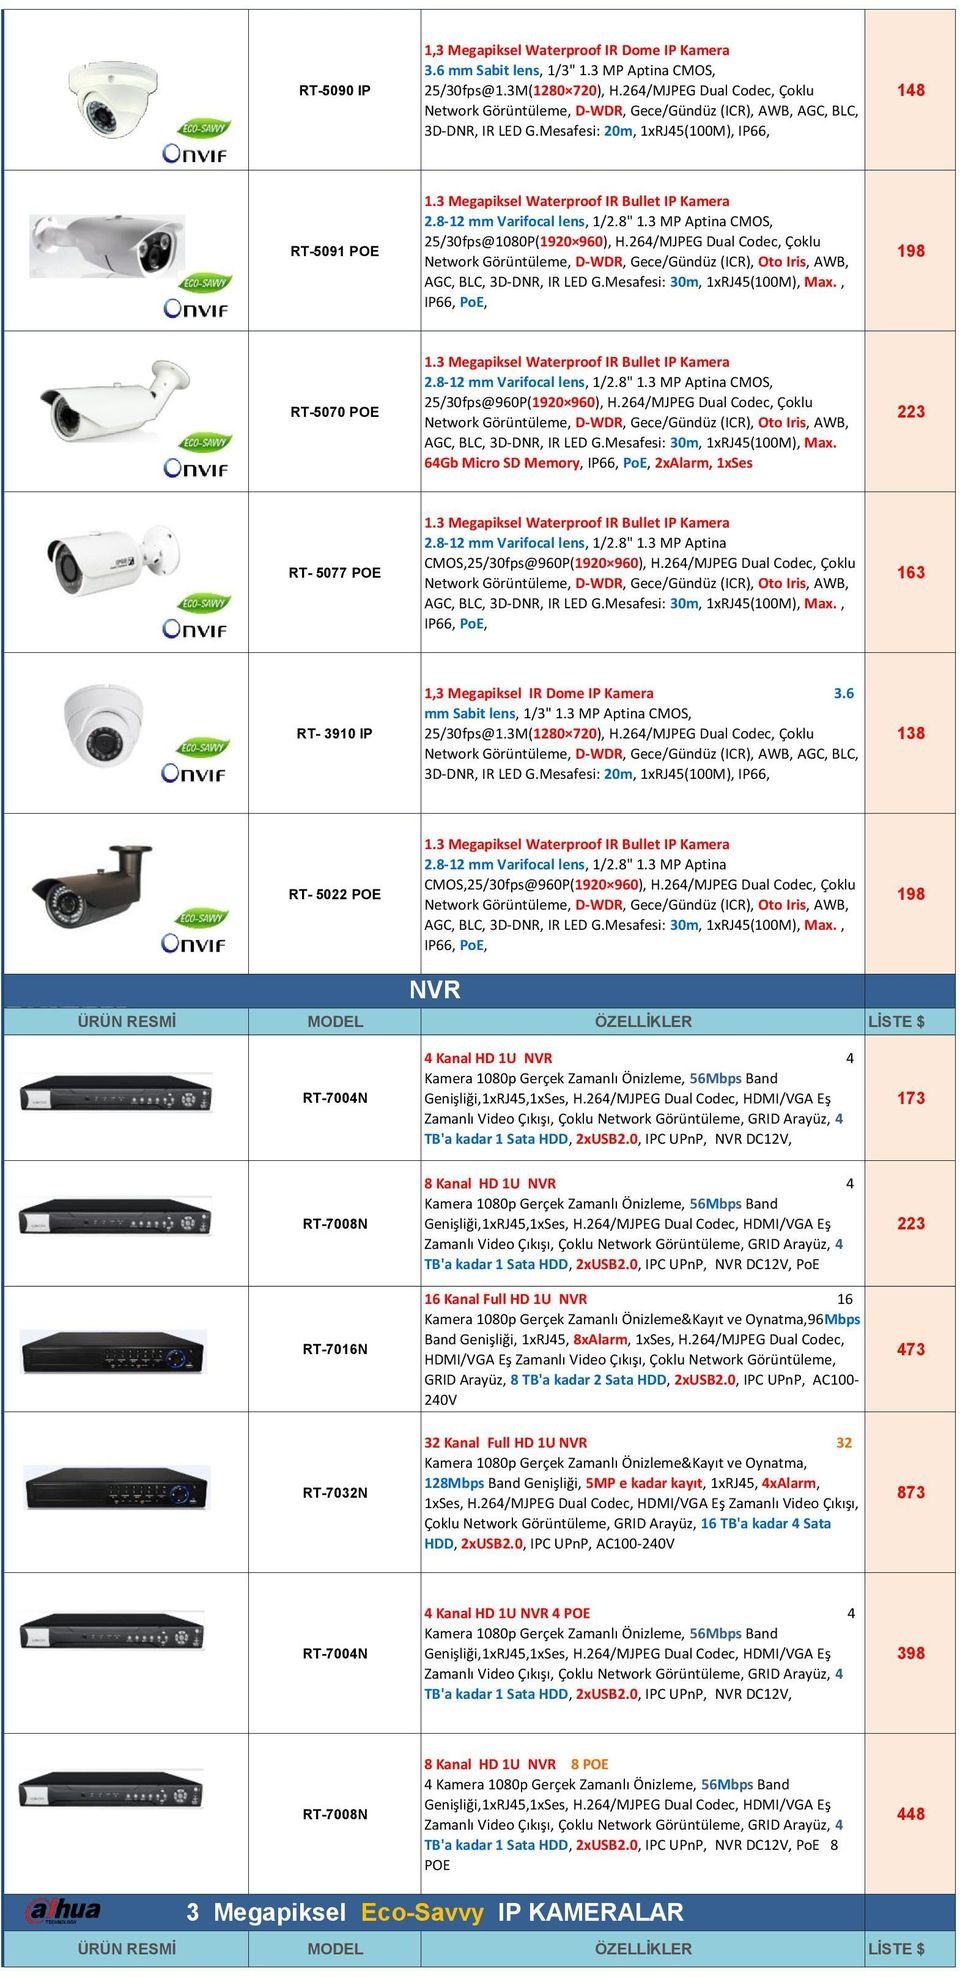 "6 mm Sabit lens, 1/3"" 1.3 MP Aptina CMOS, 138 RT- 5022 POE 2.8-12 mm Varifocal lens, 1/2.8"" 1."